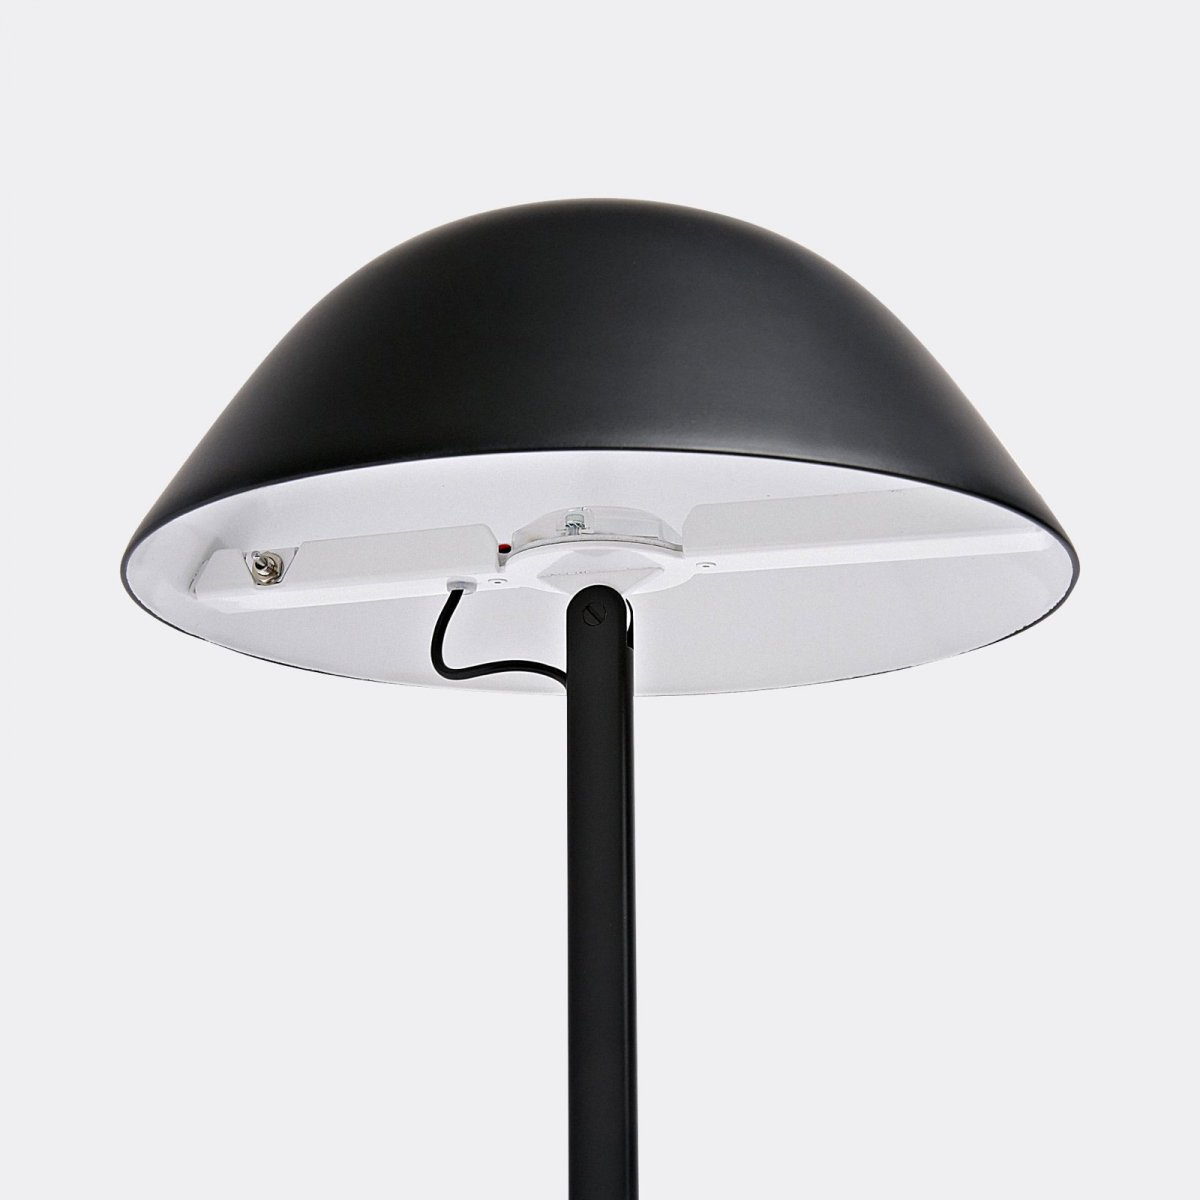 Sempé w103b table lamp, black, detail.